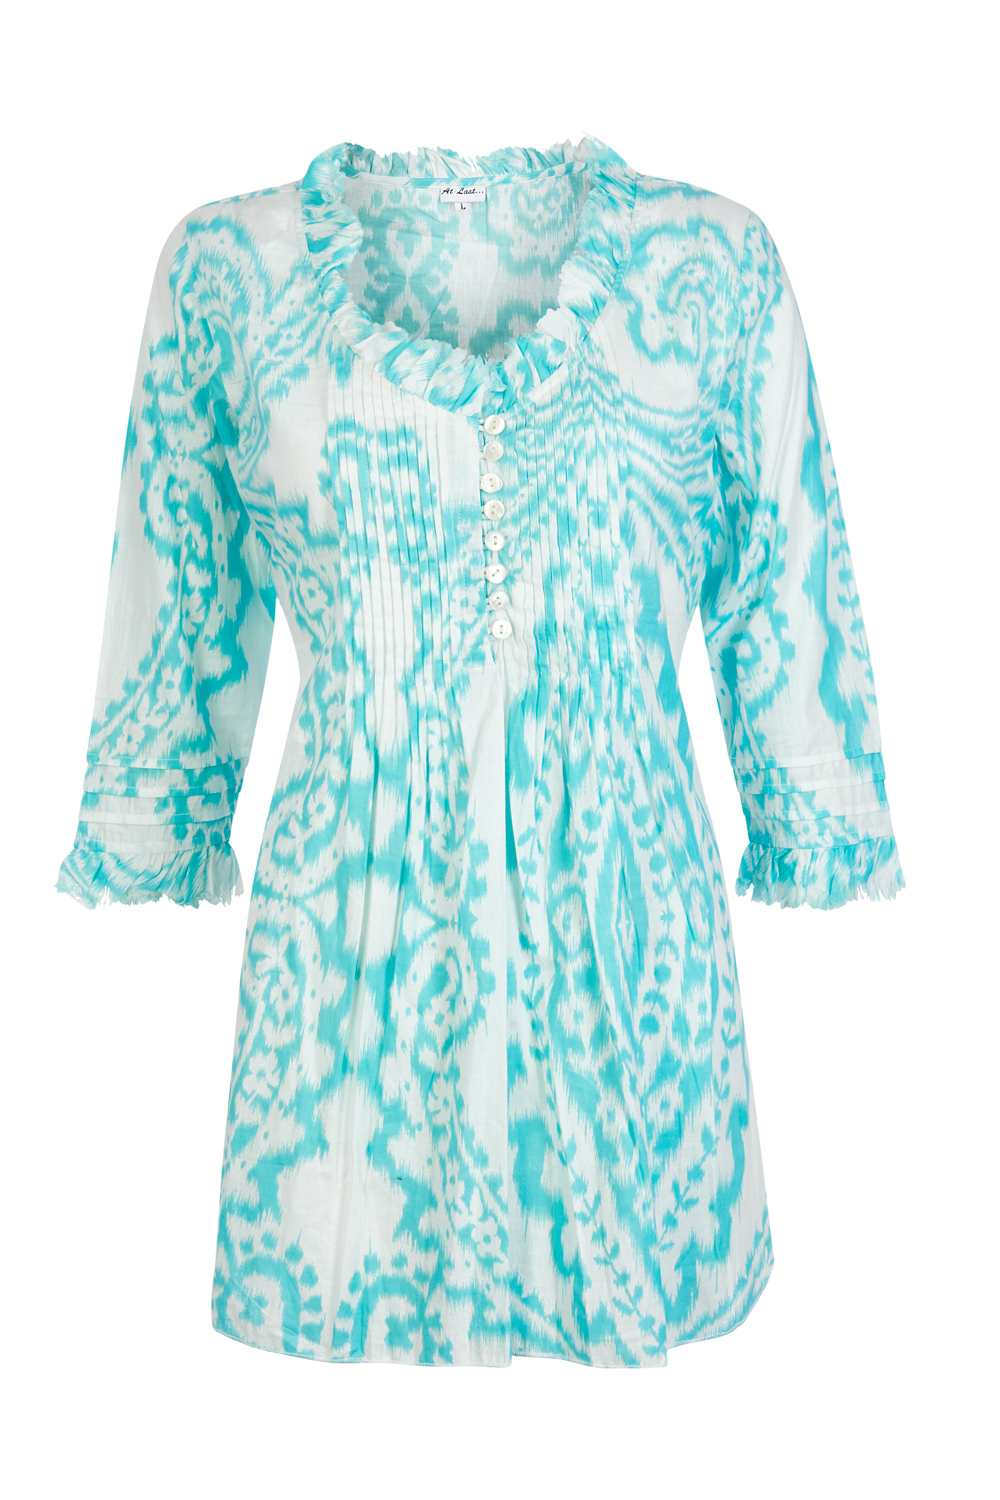 At Last Sophie - Turquoise Ikat